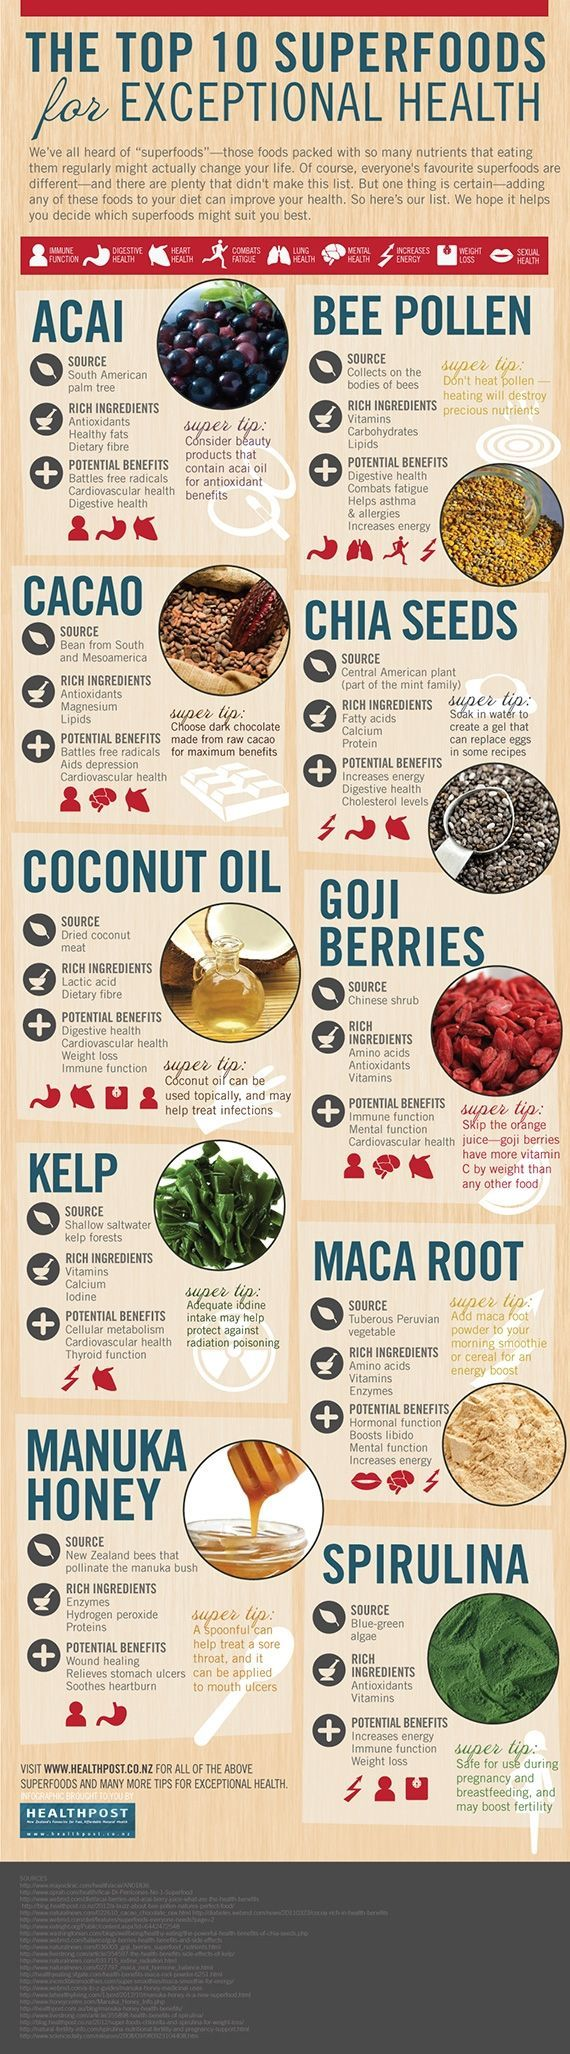 Top 10 Superfoods for Exceptional Health | infographic superfoods health diet nutrition justaddgoodstuff